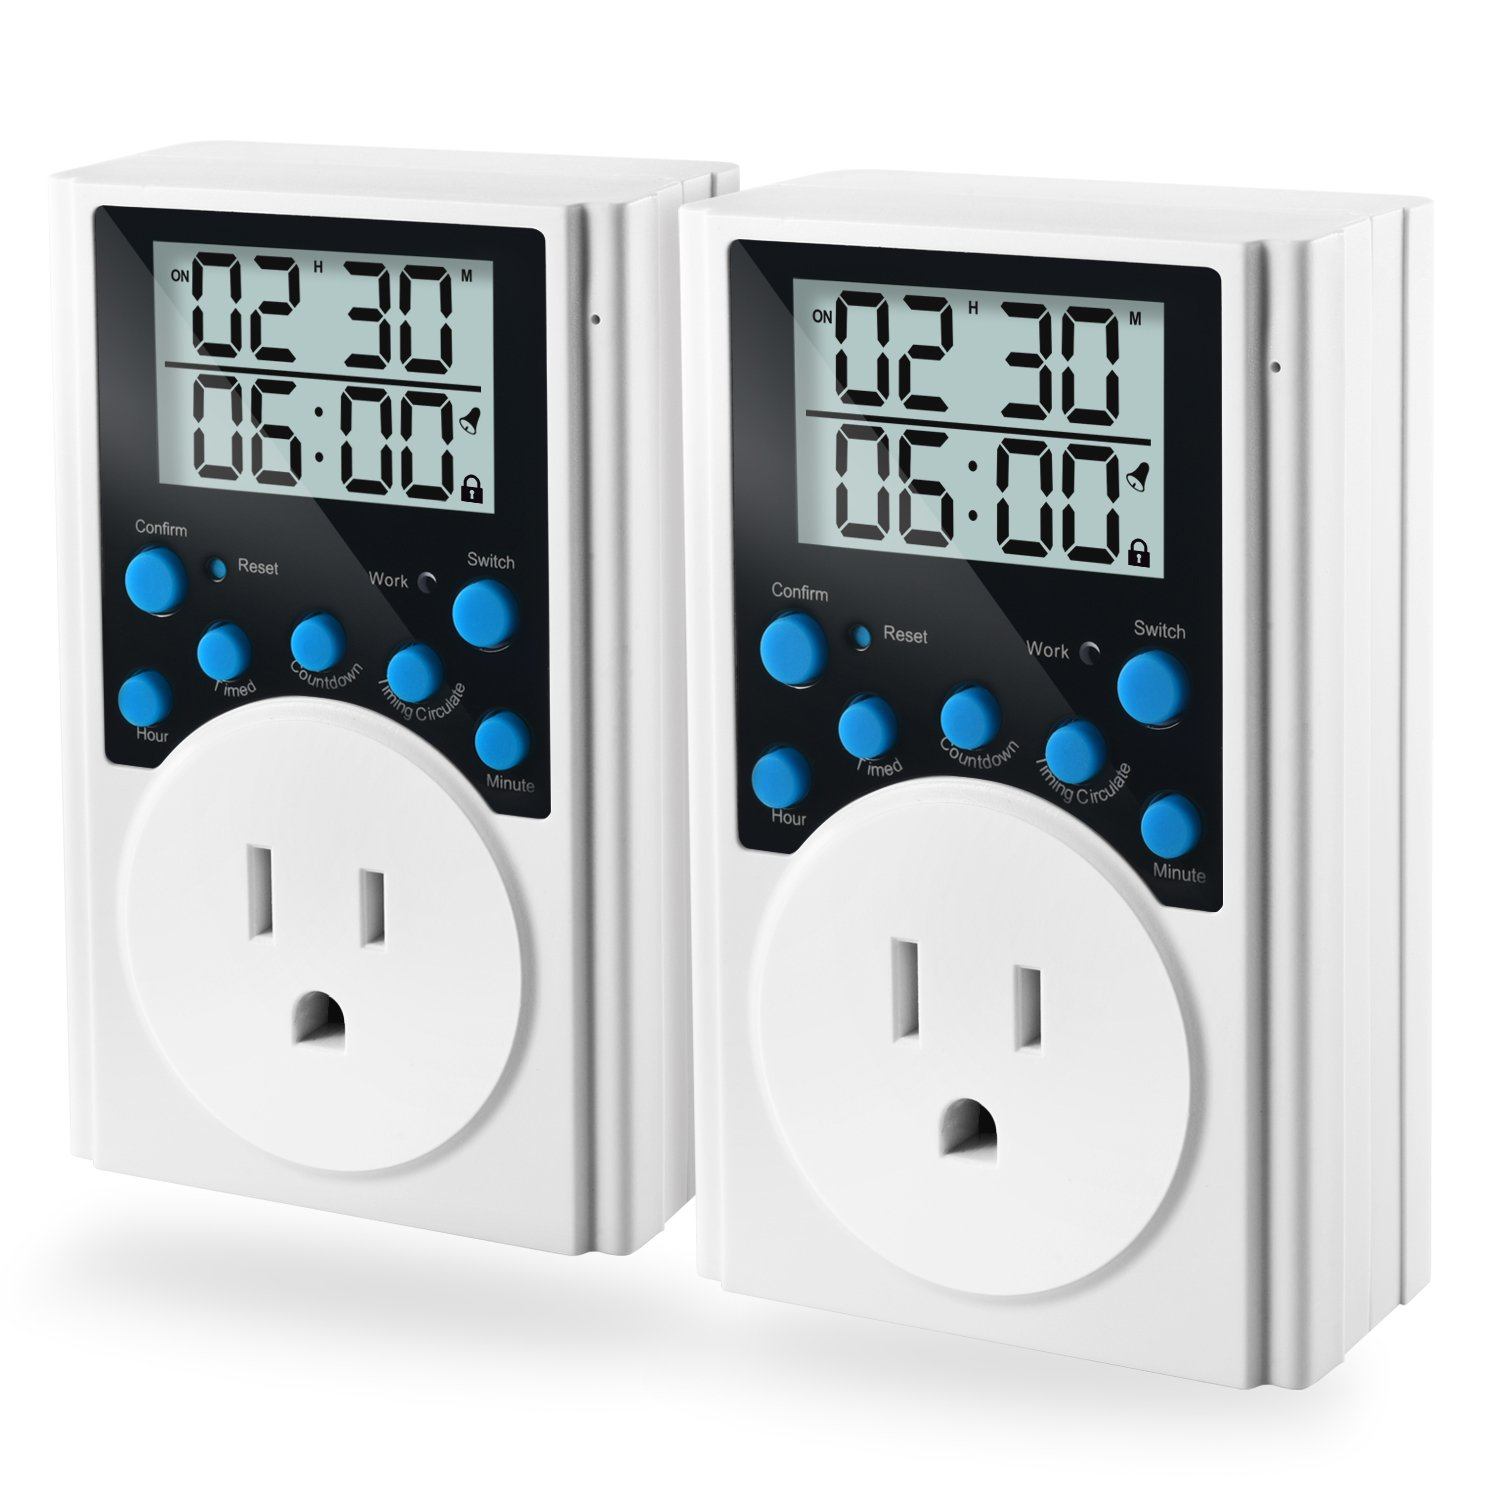 Programmable Plug-in Light Timer for Electrical Outlet Indoor Digital Timer Switch with Countdown and Short Interval Cycle, 2 Pack